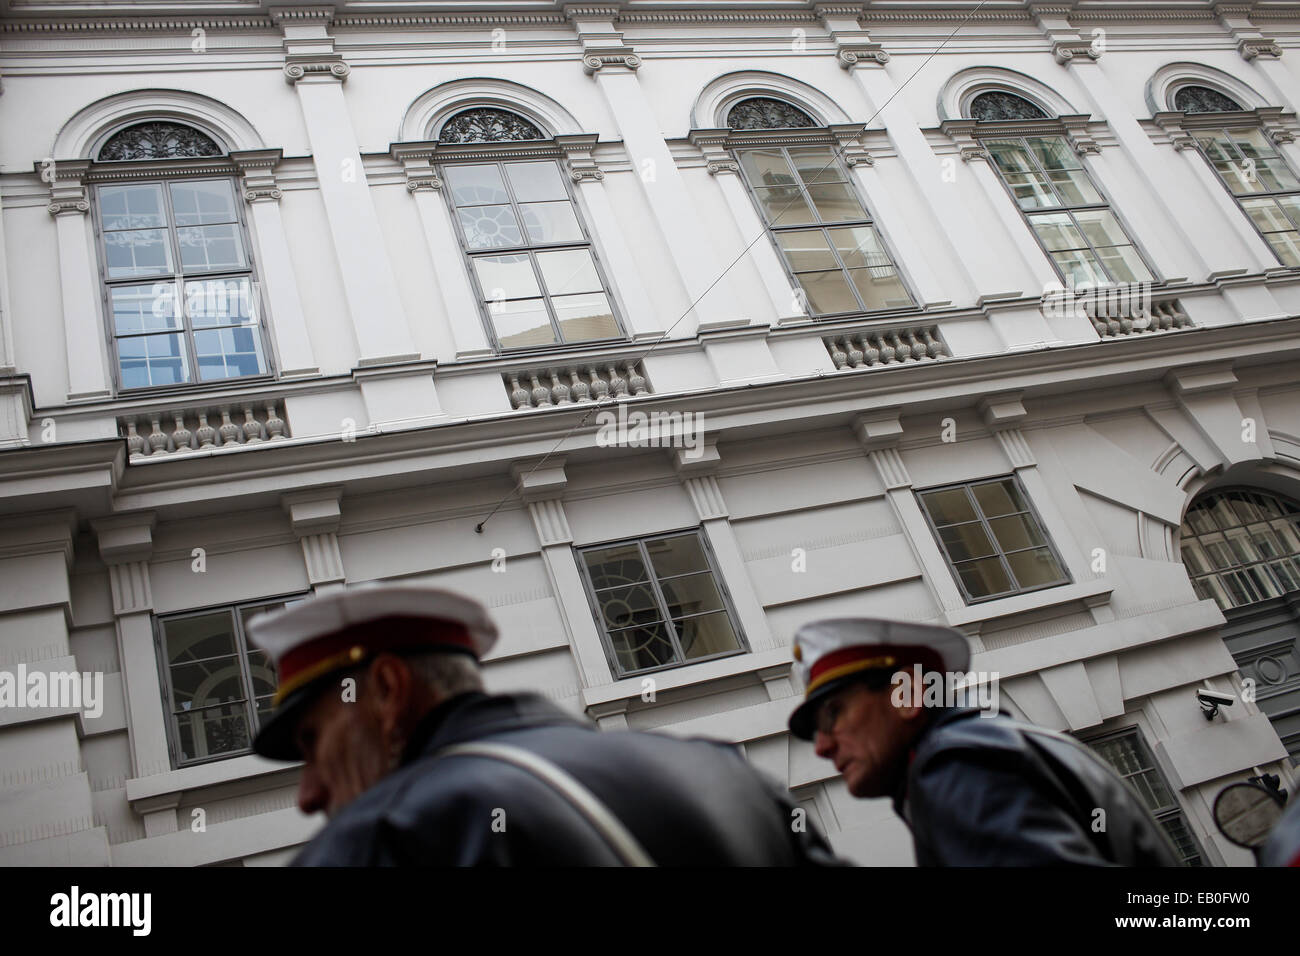 Vienna, Austria. 23rd Nov, 2014. Two policemen stand guard outside the meeting place of Iran and P5 1 group in Vienna, - Stock Image